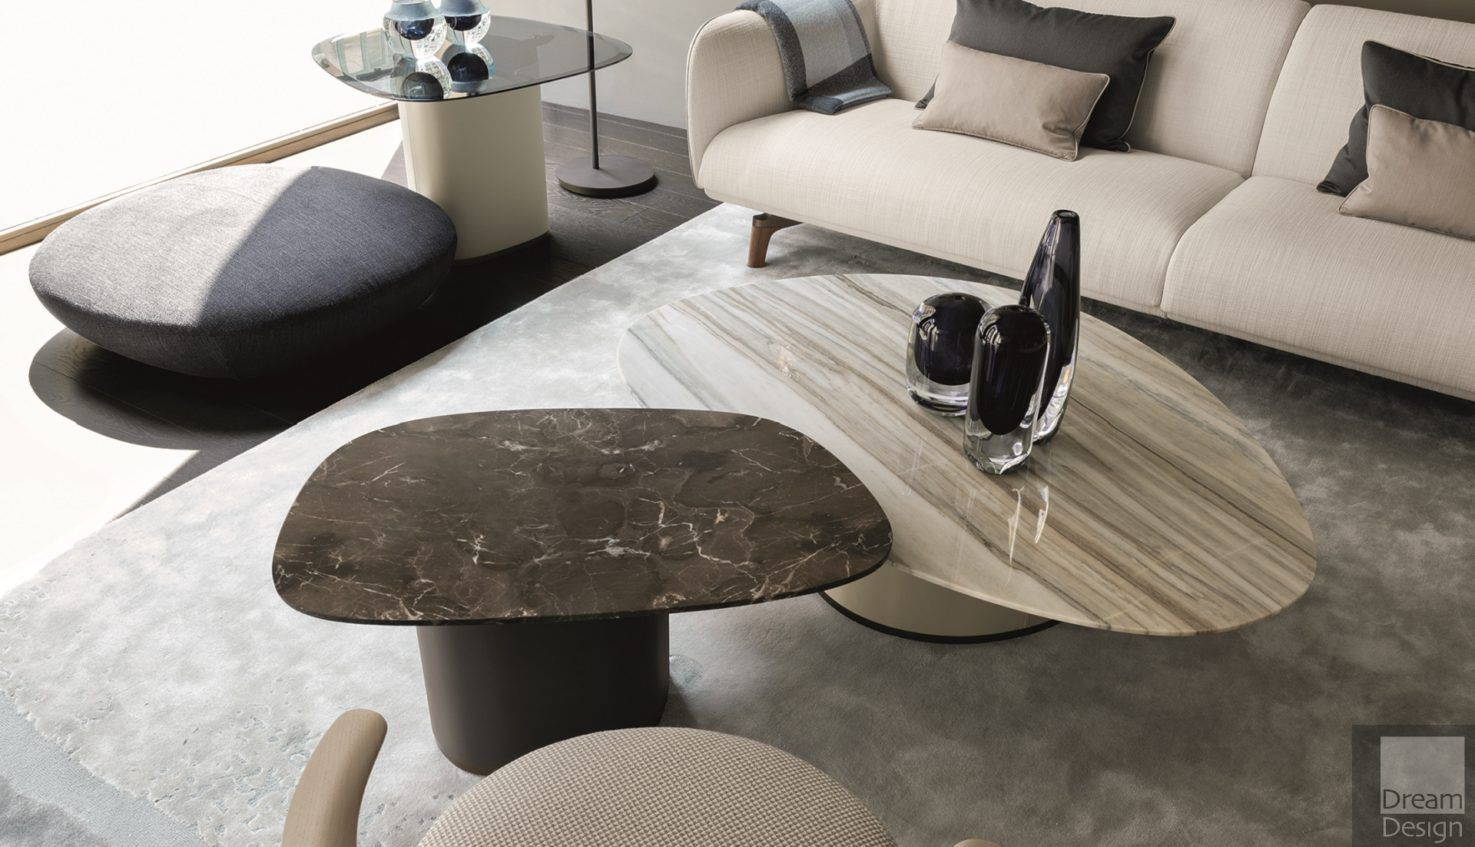 Giorgetti Galet low table